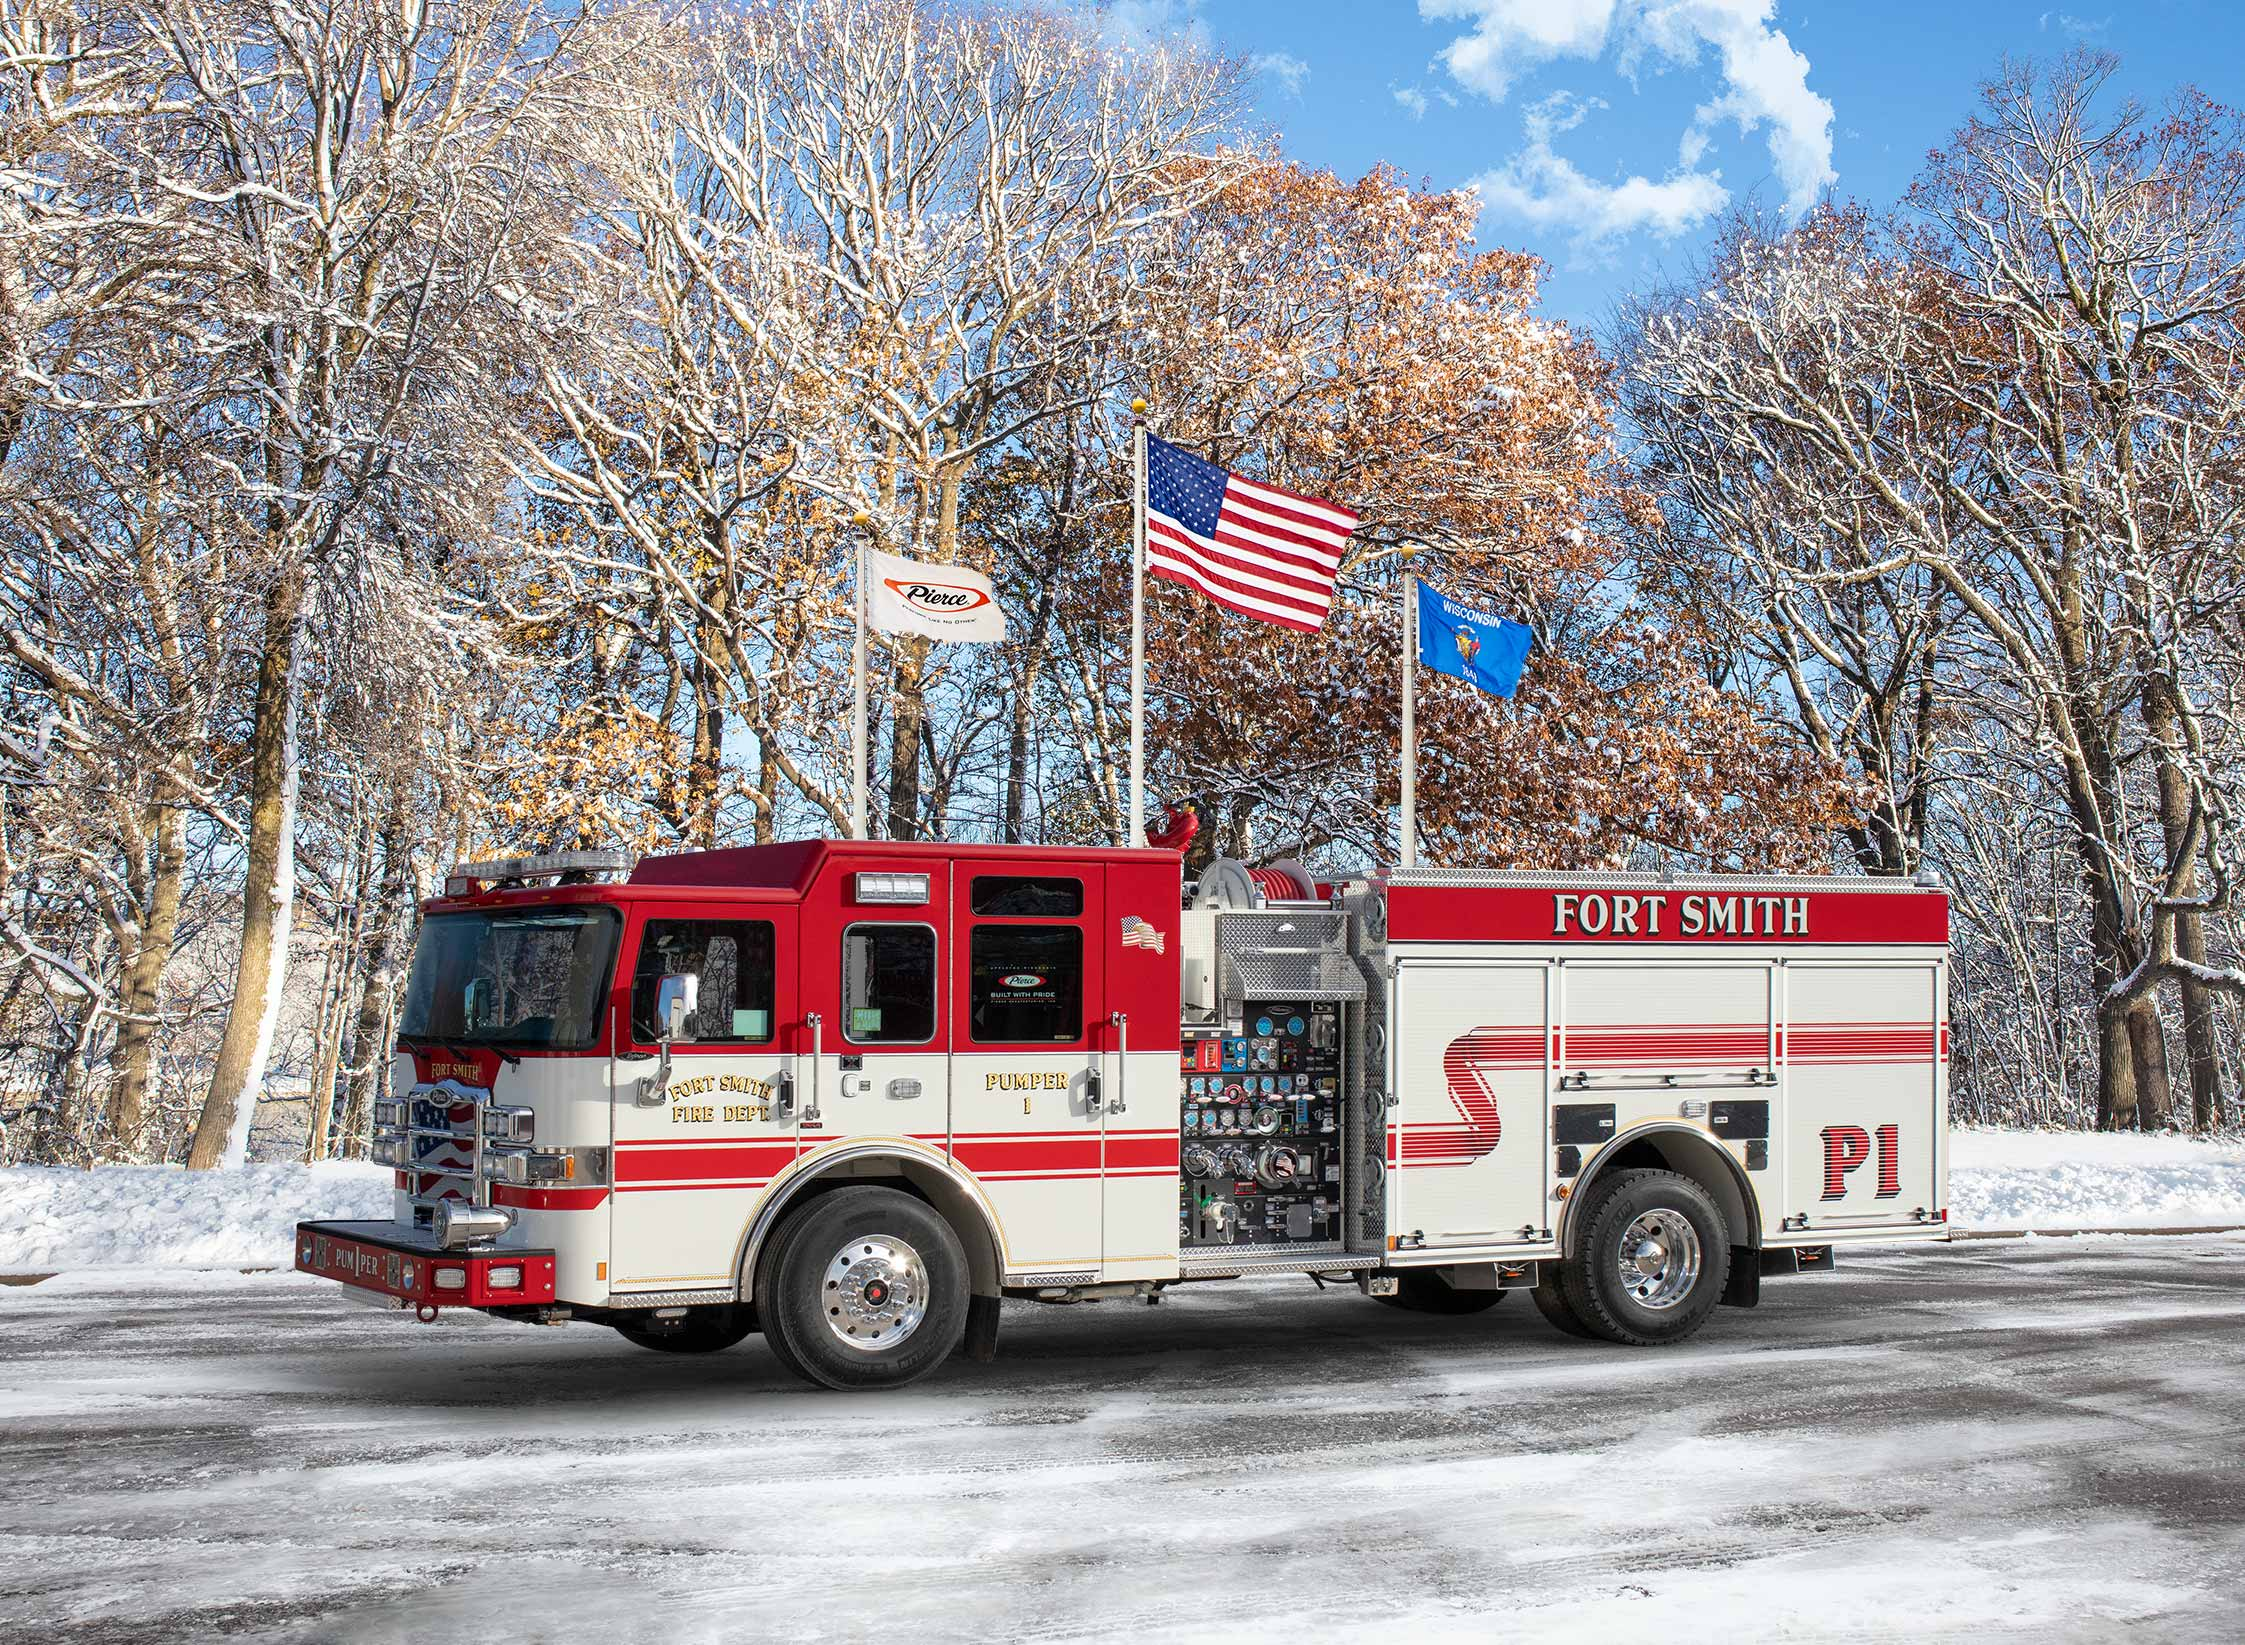 Fort Smith Fire Department - Pumper